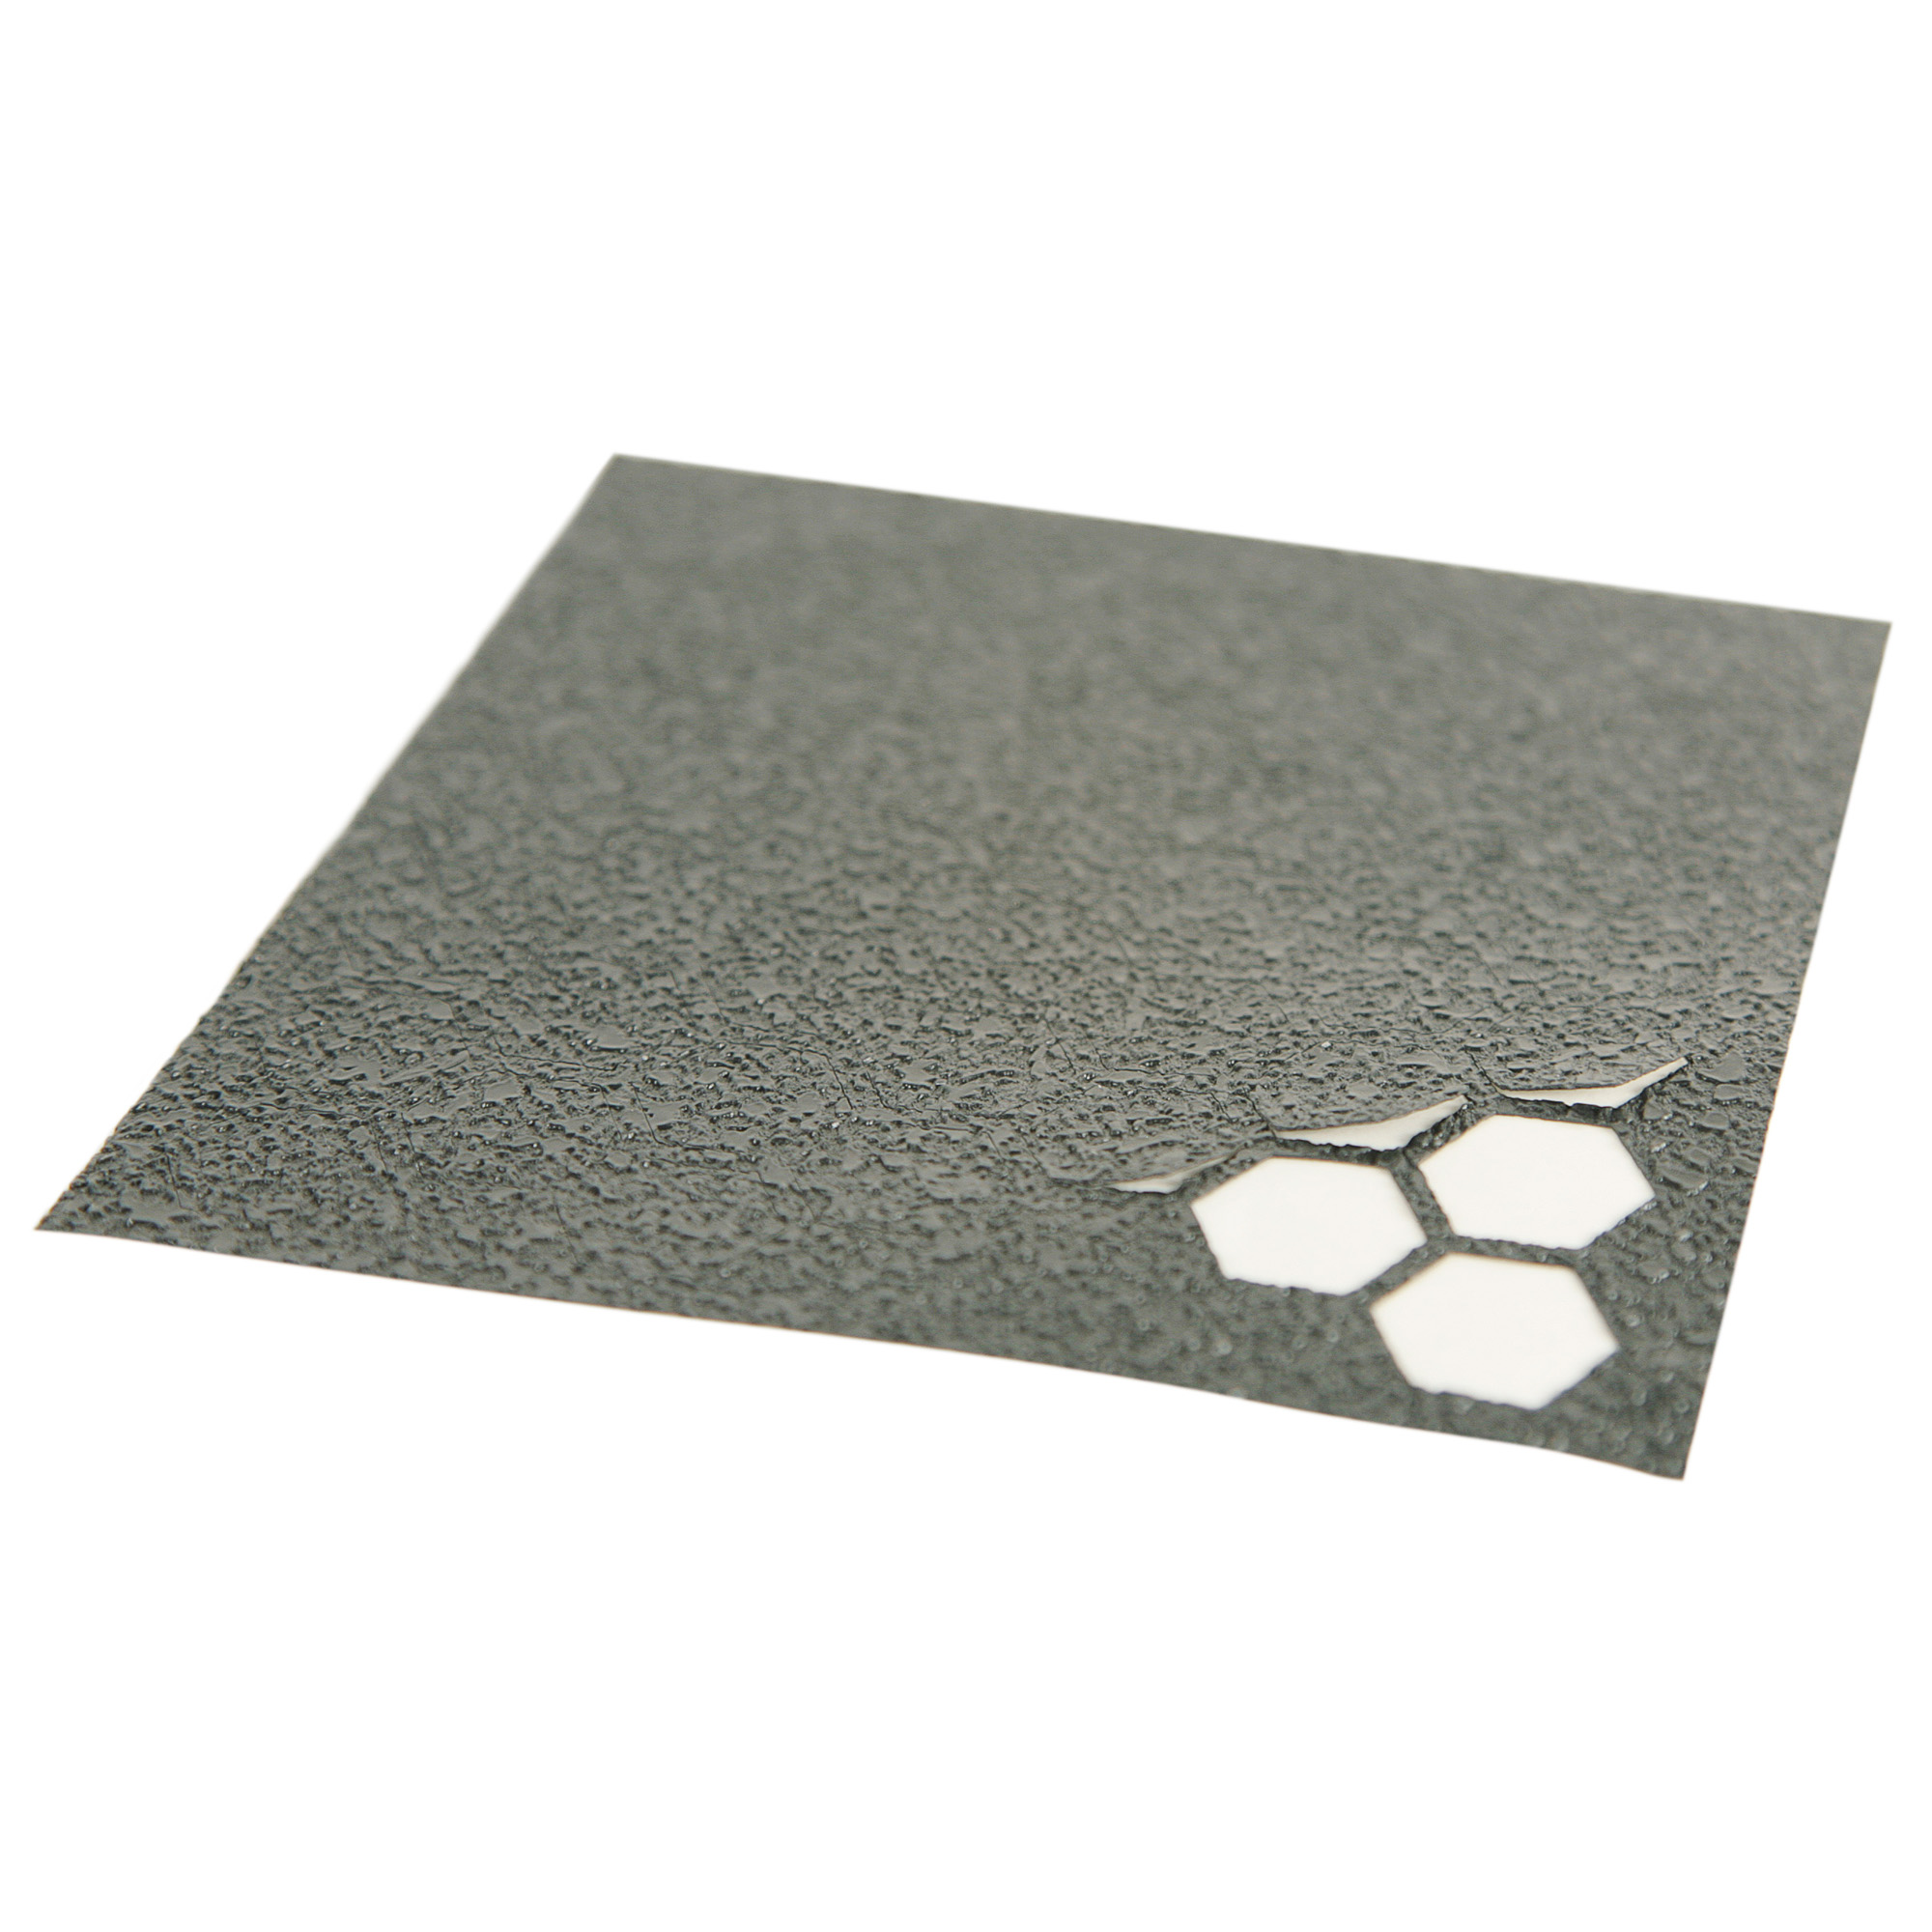 """Adding superior grip to magazines or tactical grips is as easy as peel and stick. The die-cut"""" self-adhesive Grip Tape is waterproof and highly abrasion resistant. Originally developed to fit into the Hexture(TM) design pattern of SENTRY(TM) products"""" it can be used on most any surface where you need additional grip."""